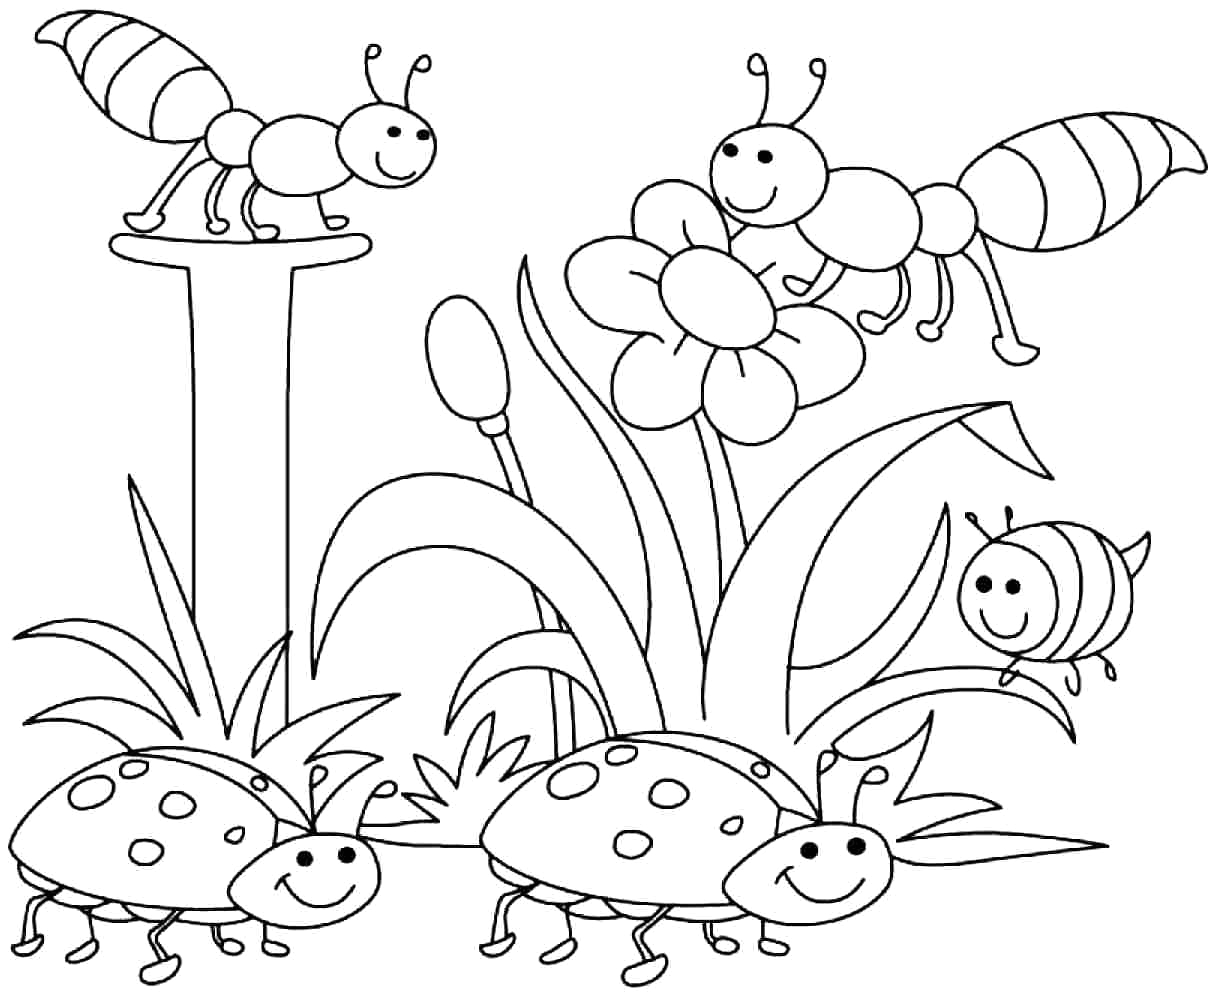 Free Printable Spring Coloring Pages for Preschoolers Printable Spring Coloring Pages Kindergarten Coloring Home